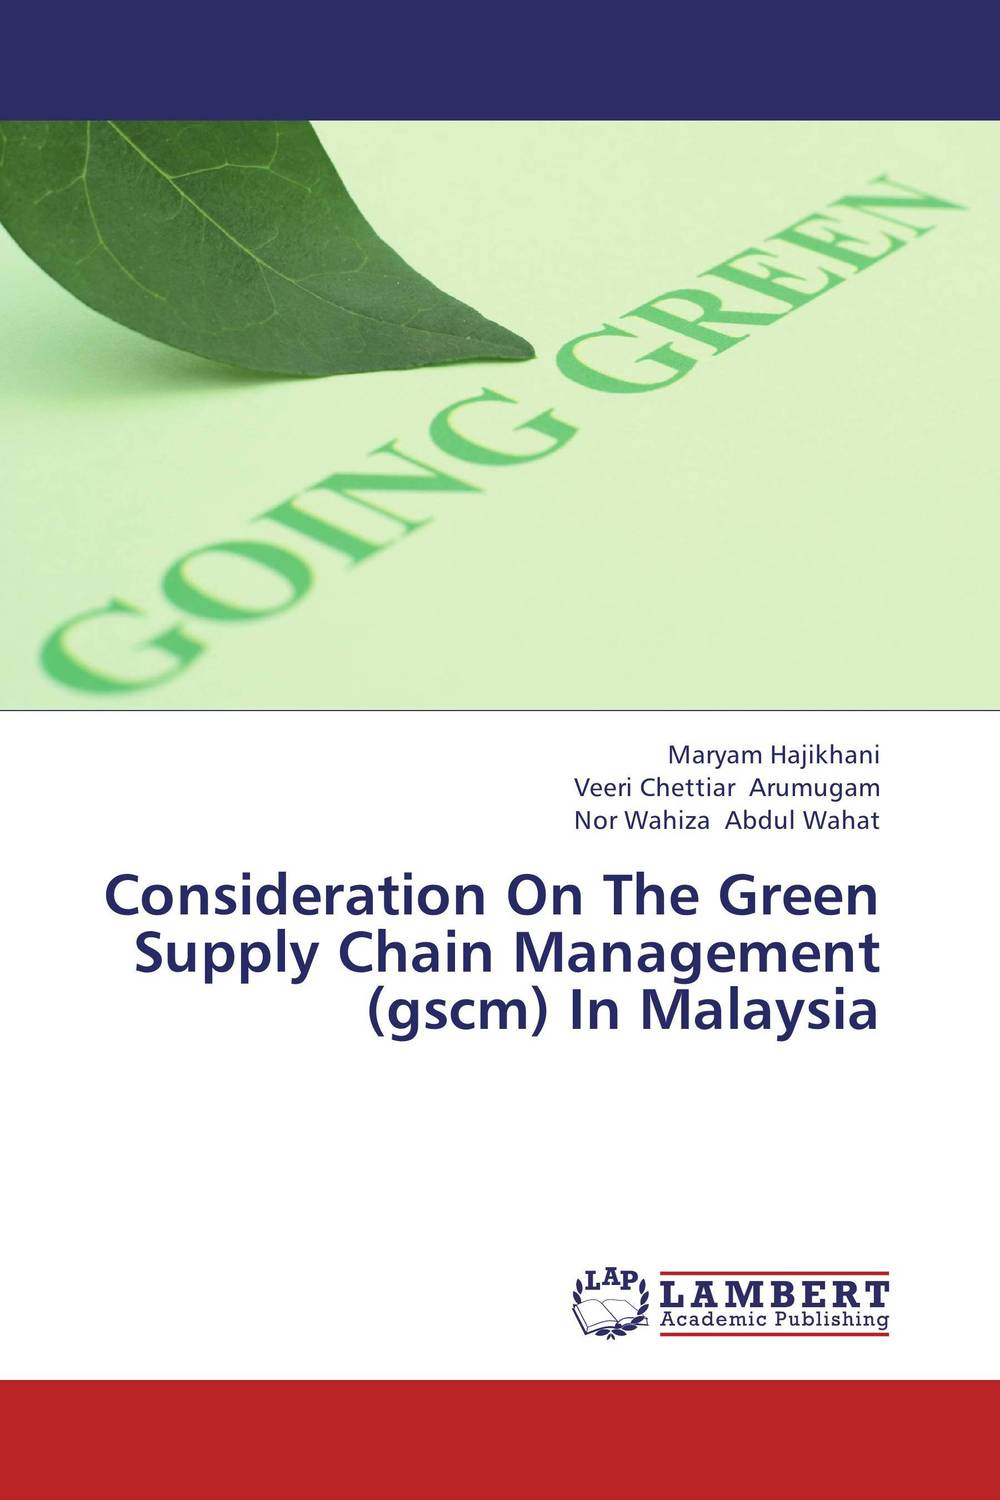 Consideration On The Green Supply Chain Management (gscm) In Malaysia vengadasan govindasamy sustainable supply chain management practices